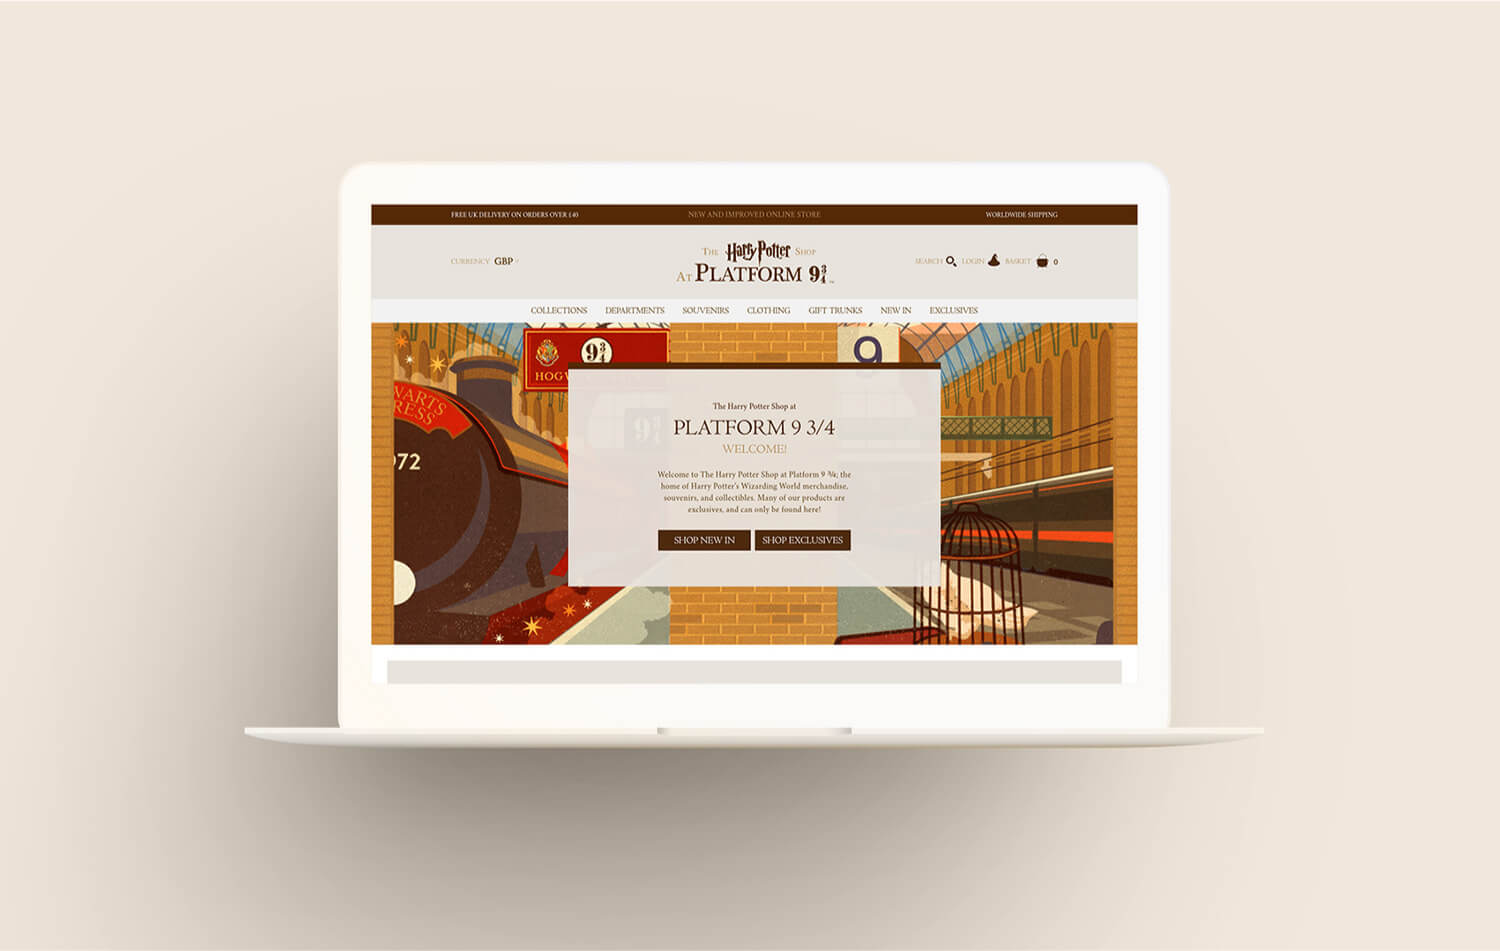 The Harry Potter store at Platform 9 3/4 - online store website redesign